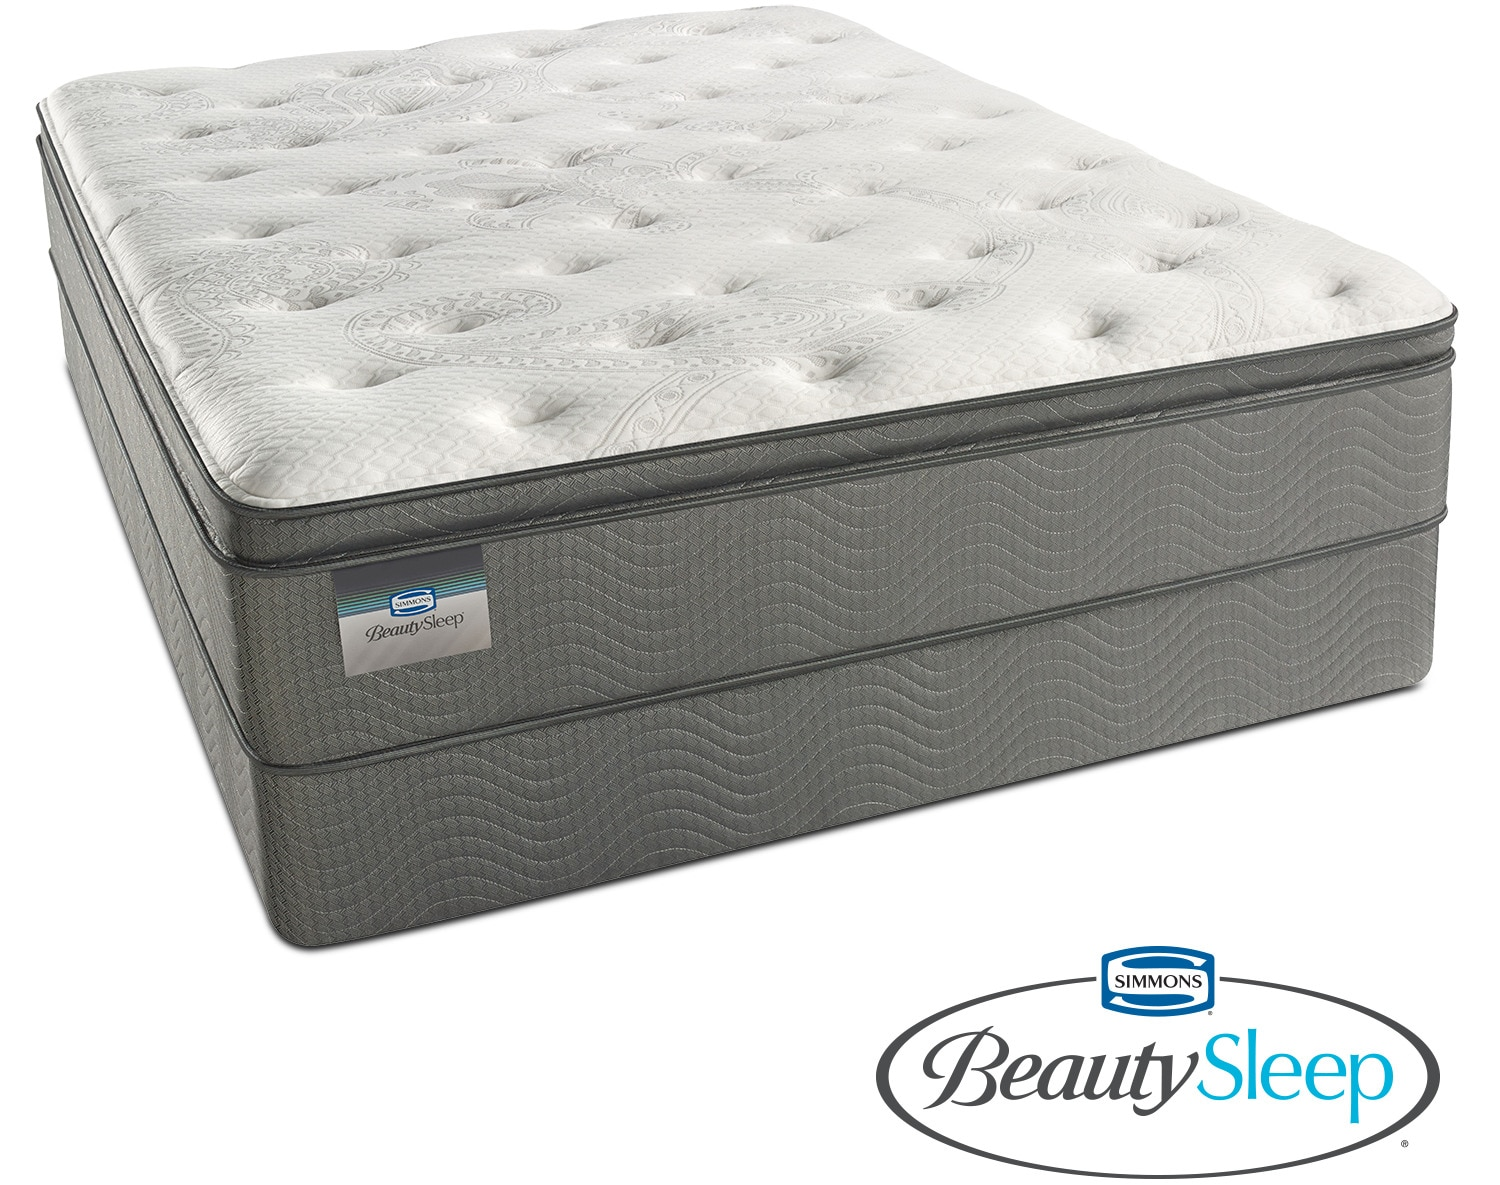 Mattresses and Bedding - Stags Leap Luxury Firm Pillowtop Queen Mattress and Low-Profile Foundation Set